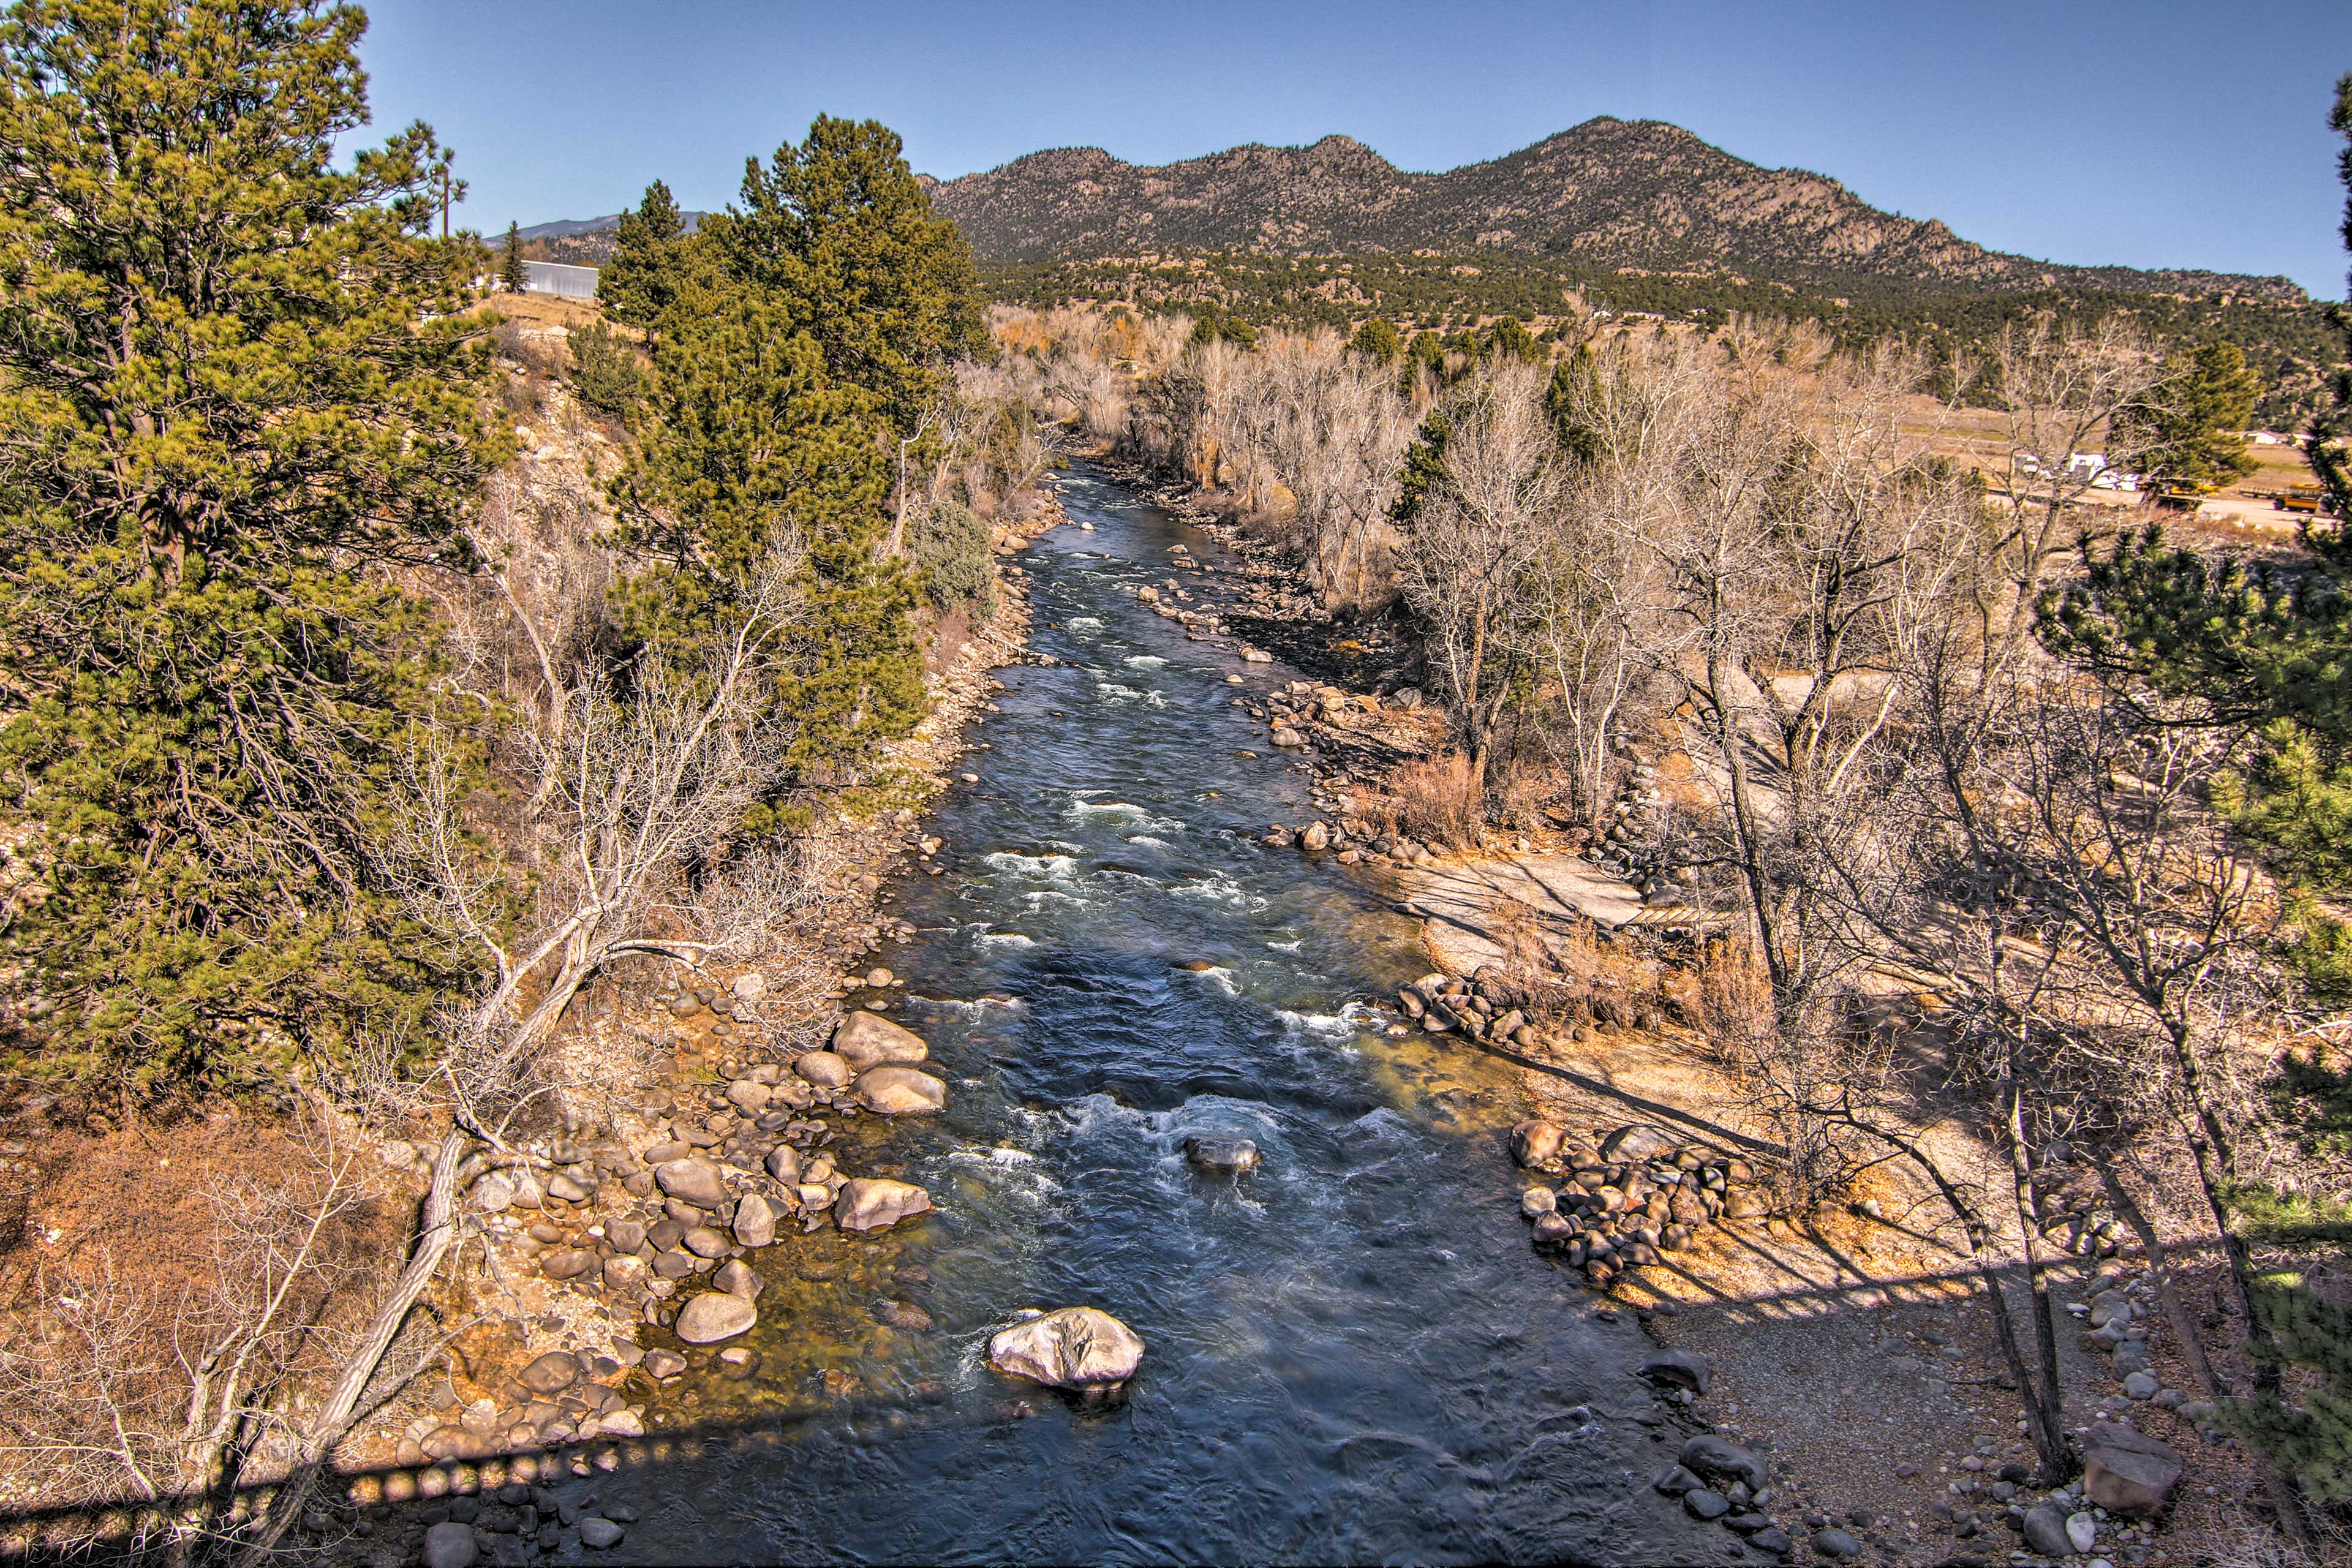 Walk down to the mighty Arkansas River!